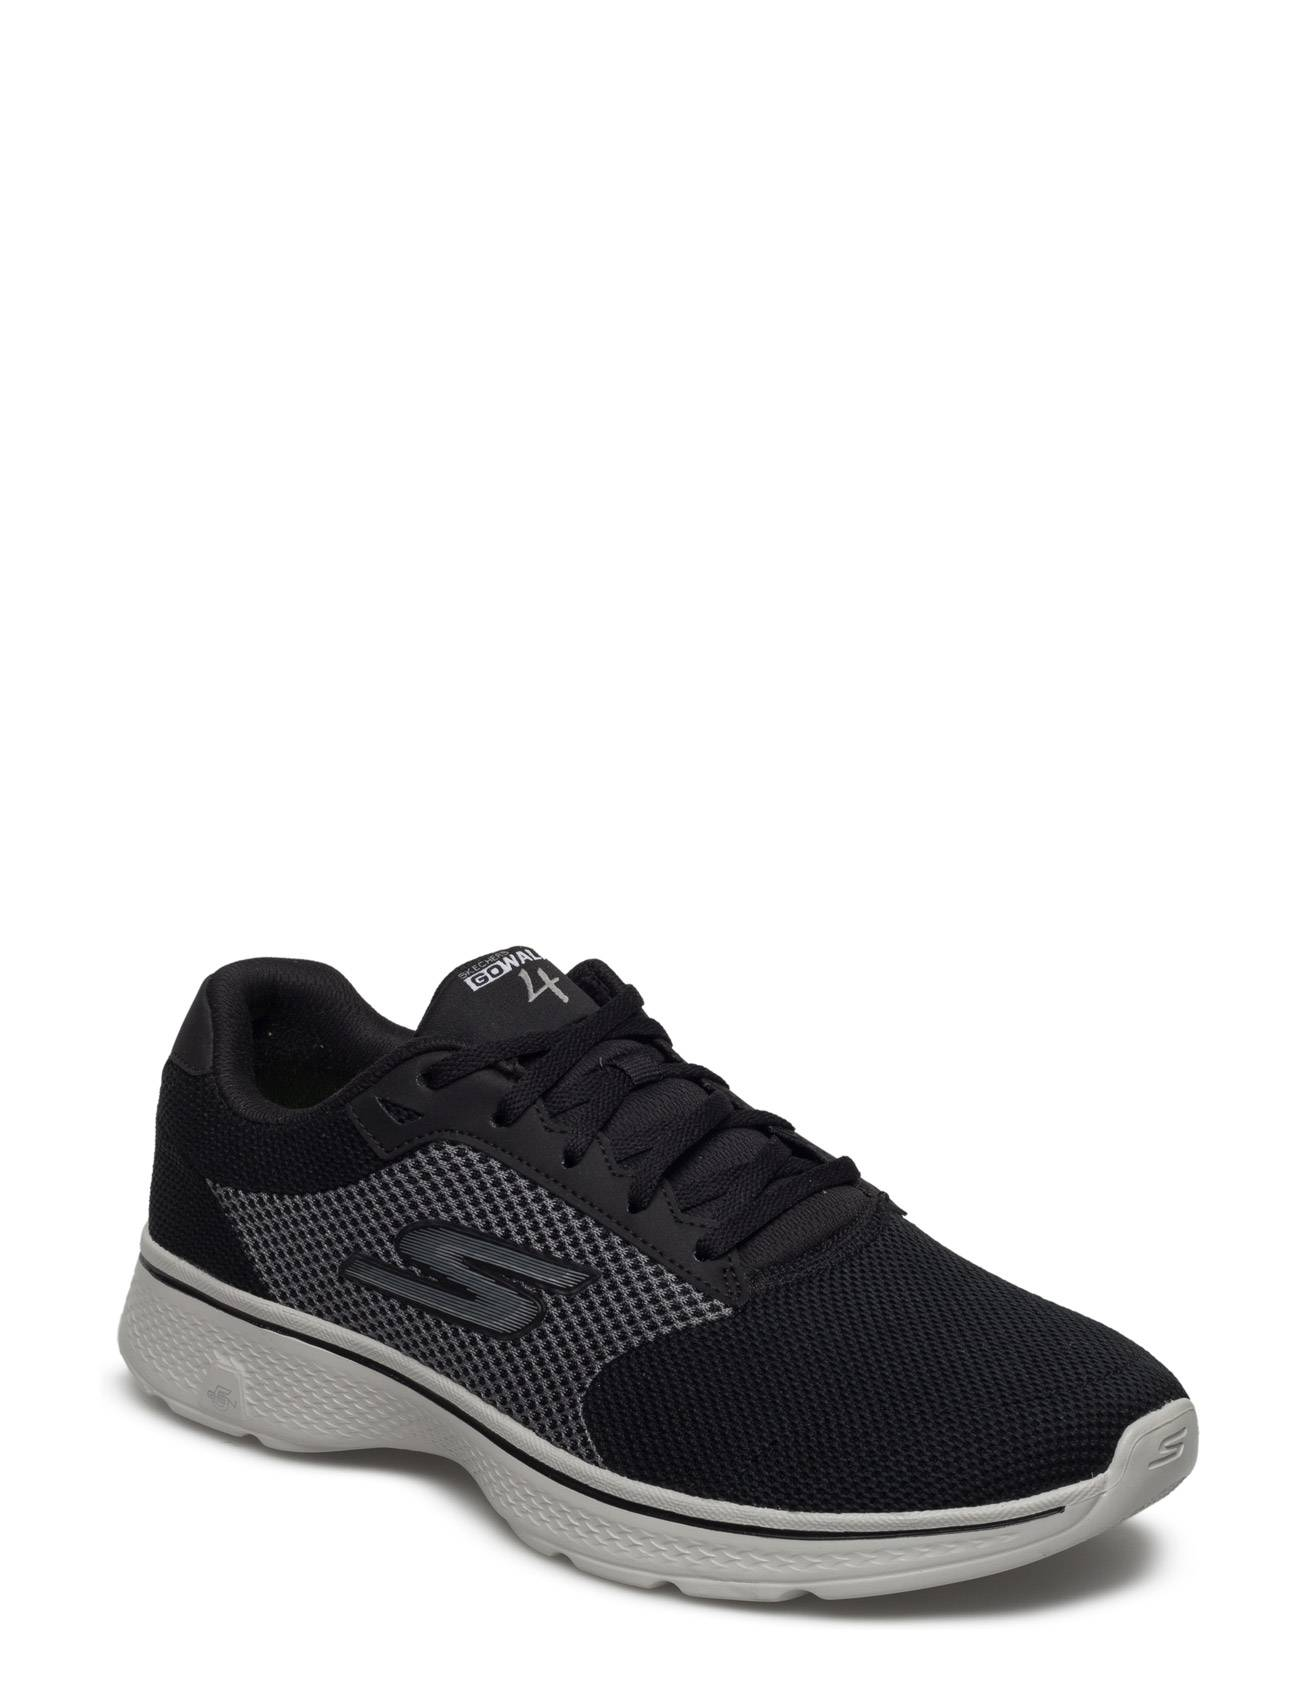 Skechers Mens Go Walk 4